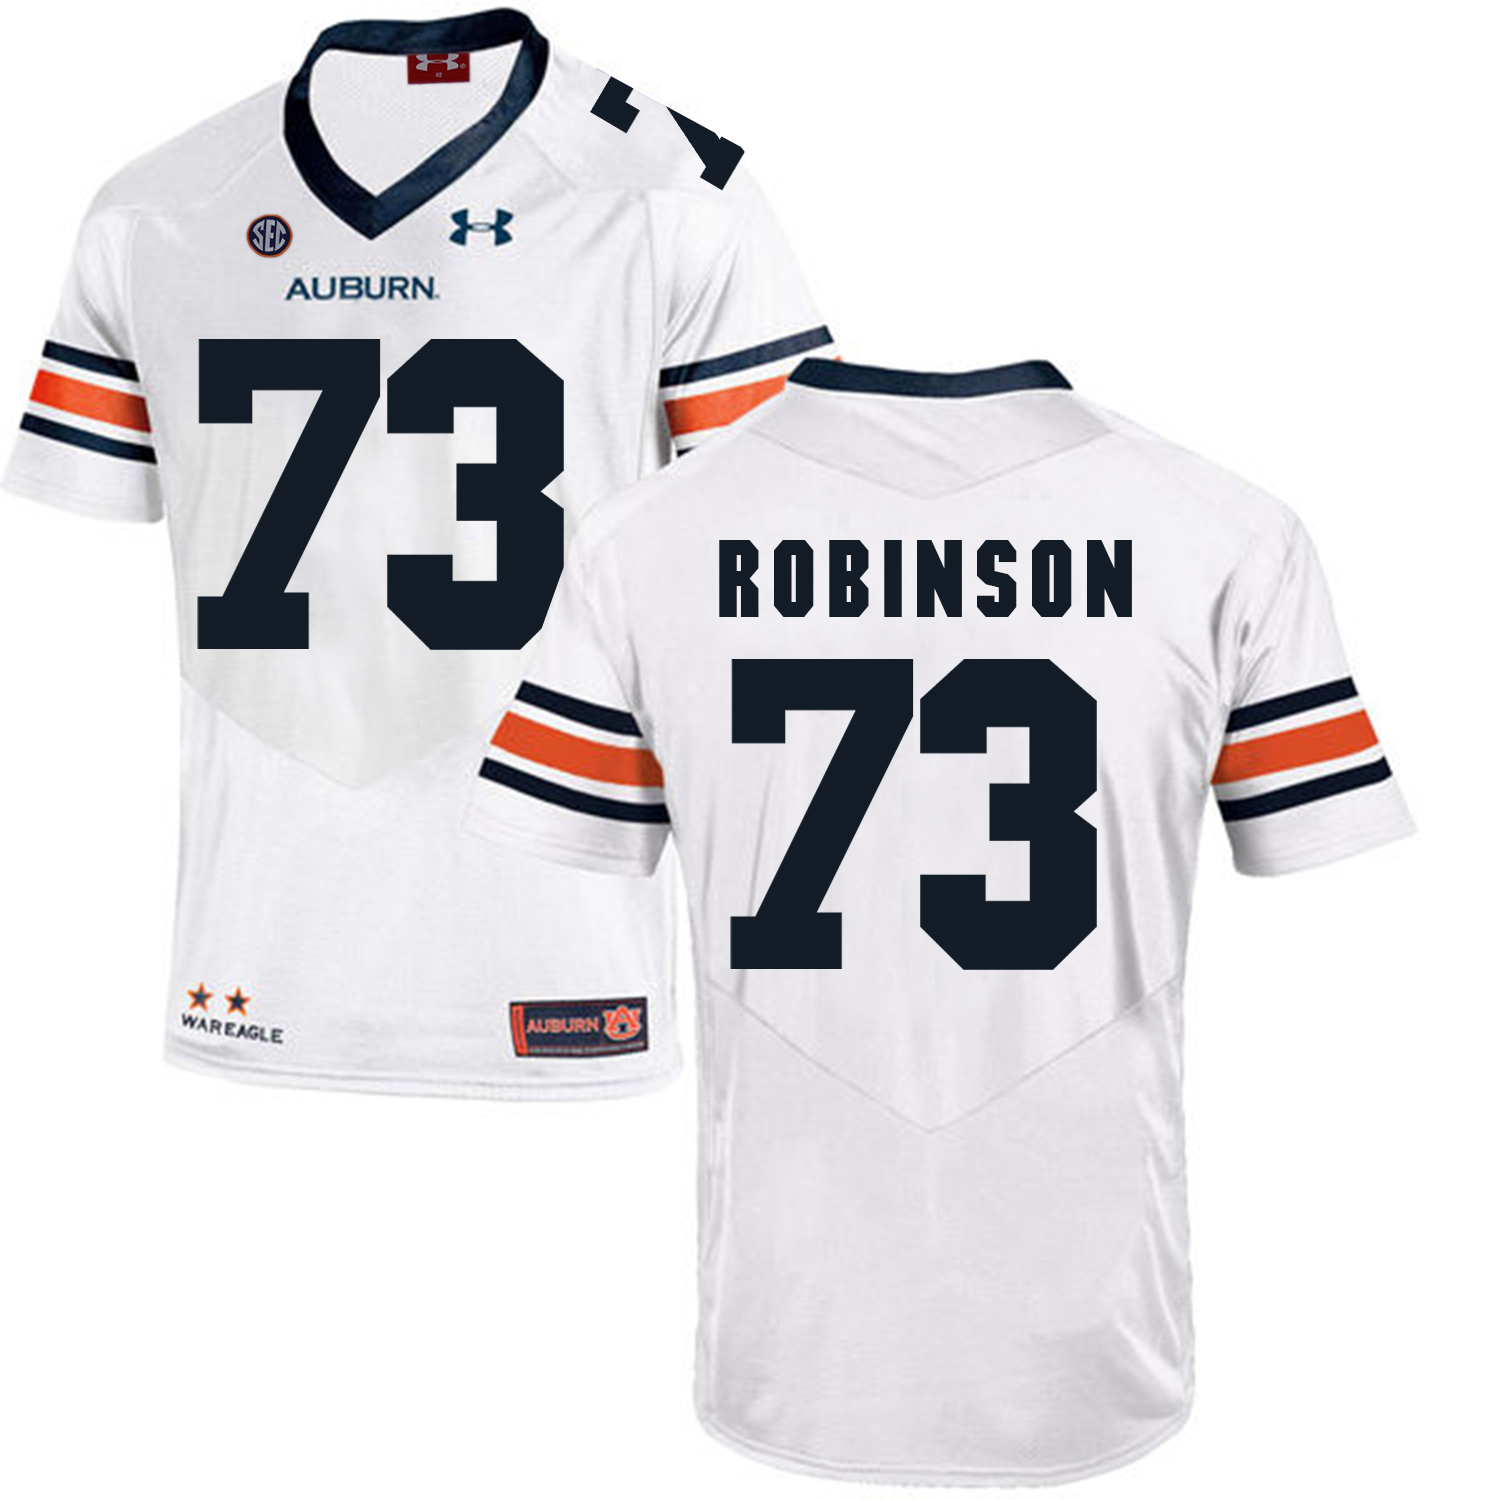 Auburn Tigers 73 Greg Robinson White College Football Jersey